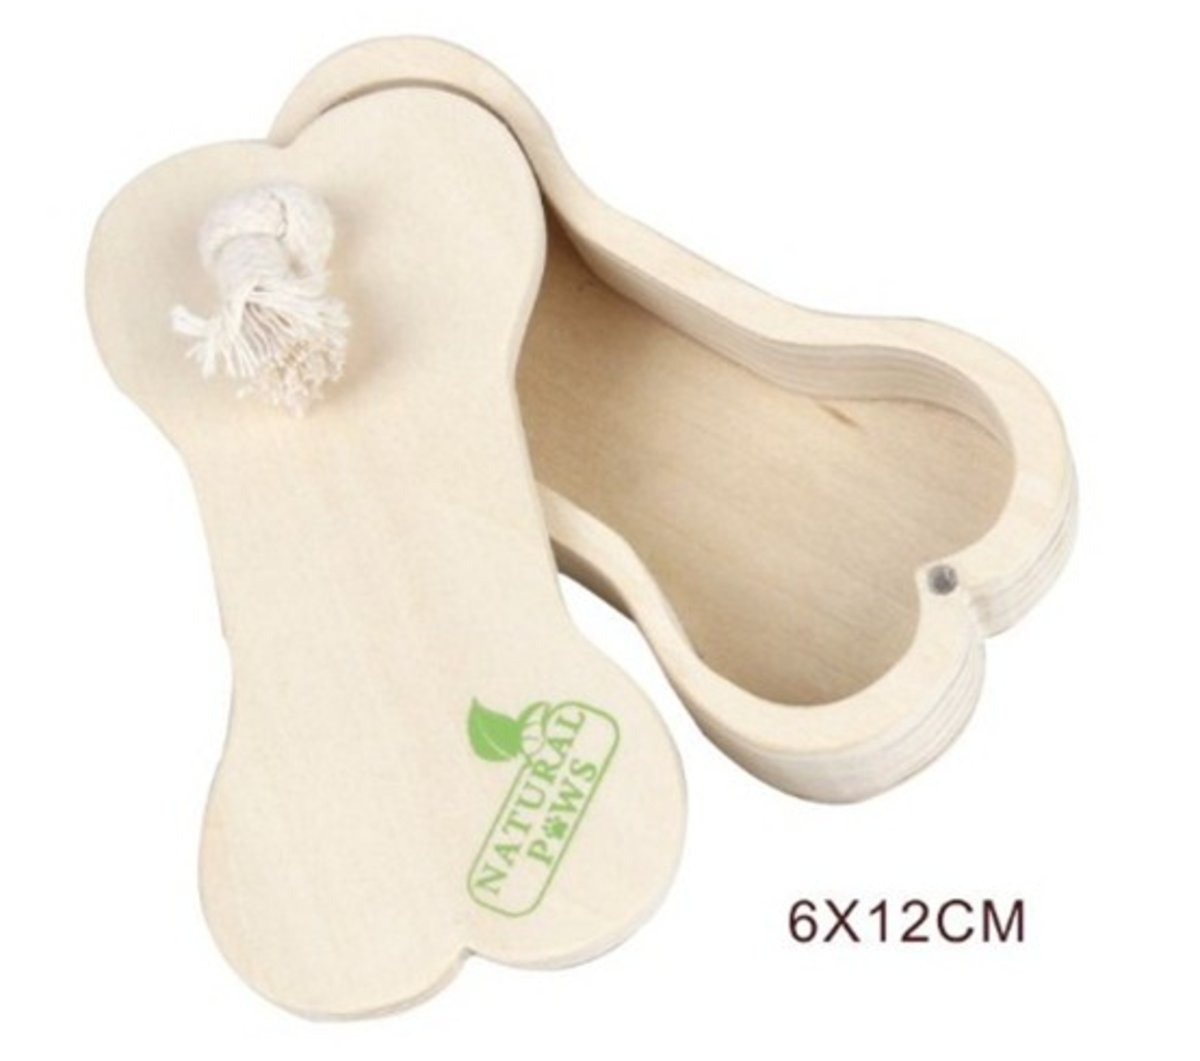 Wooden dog toy 6×12cm